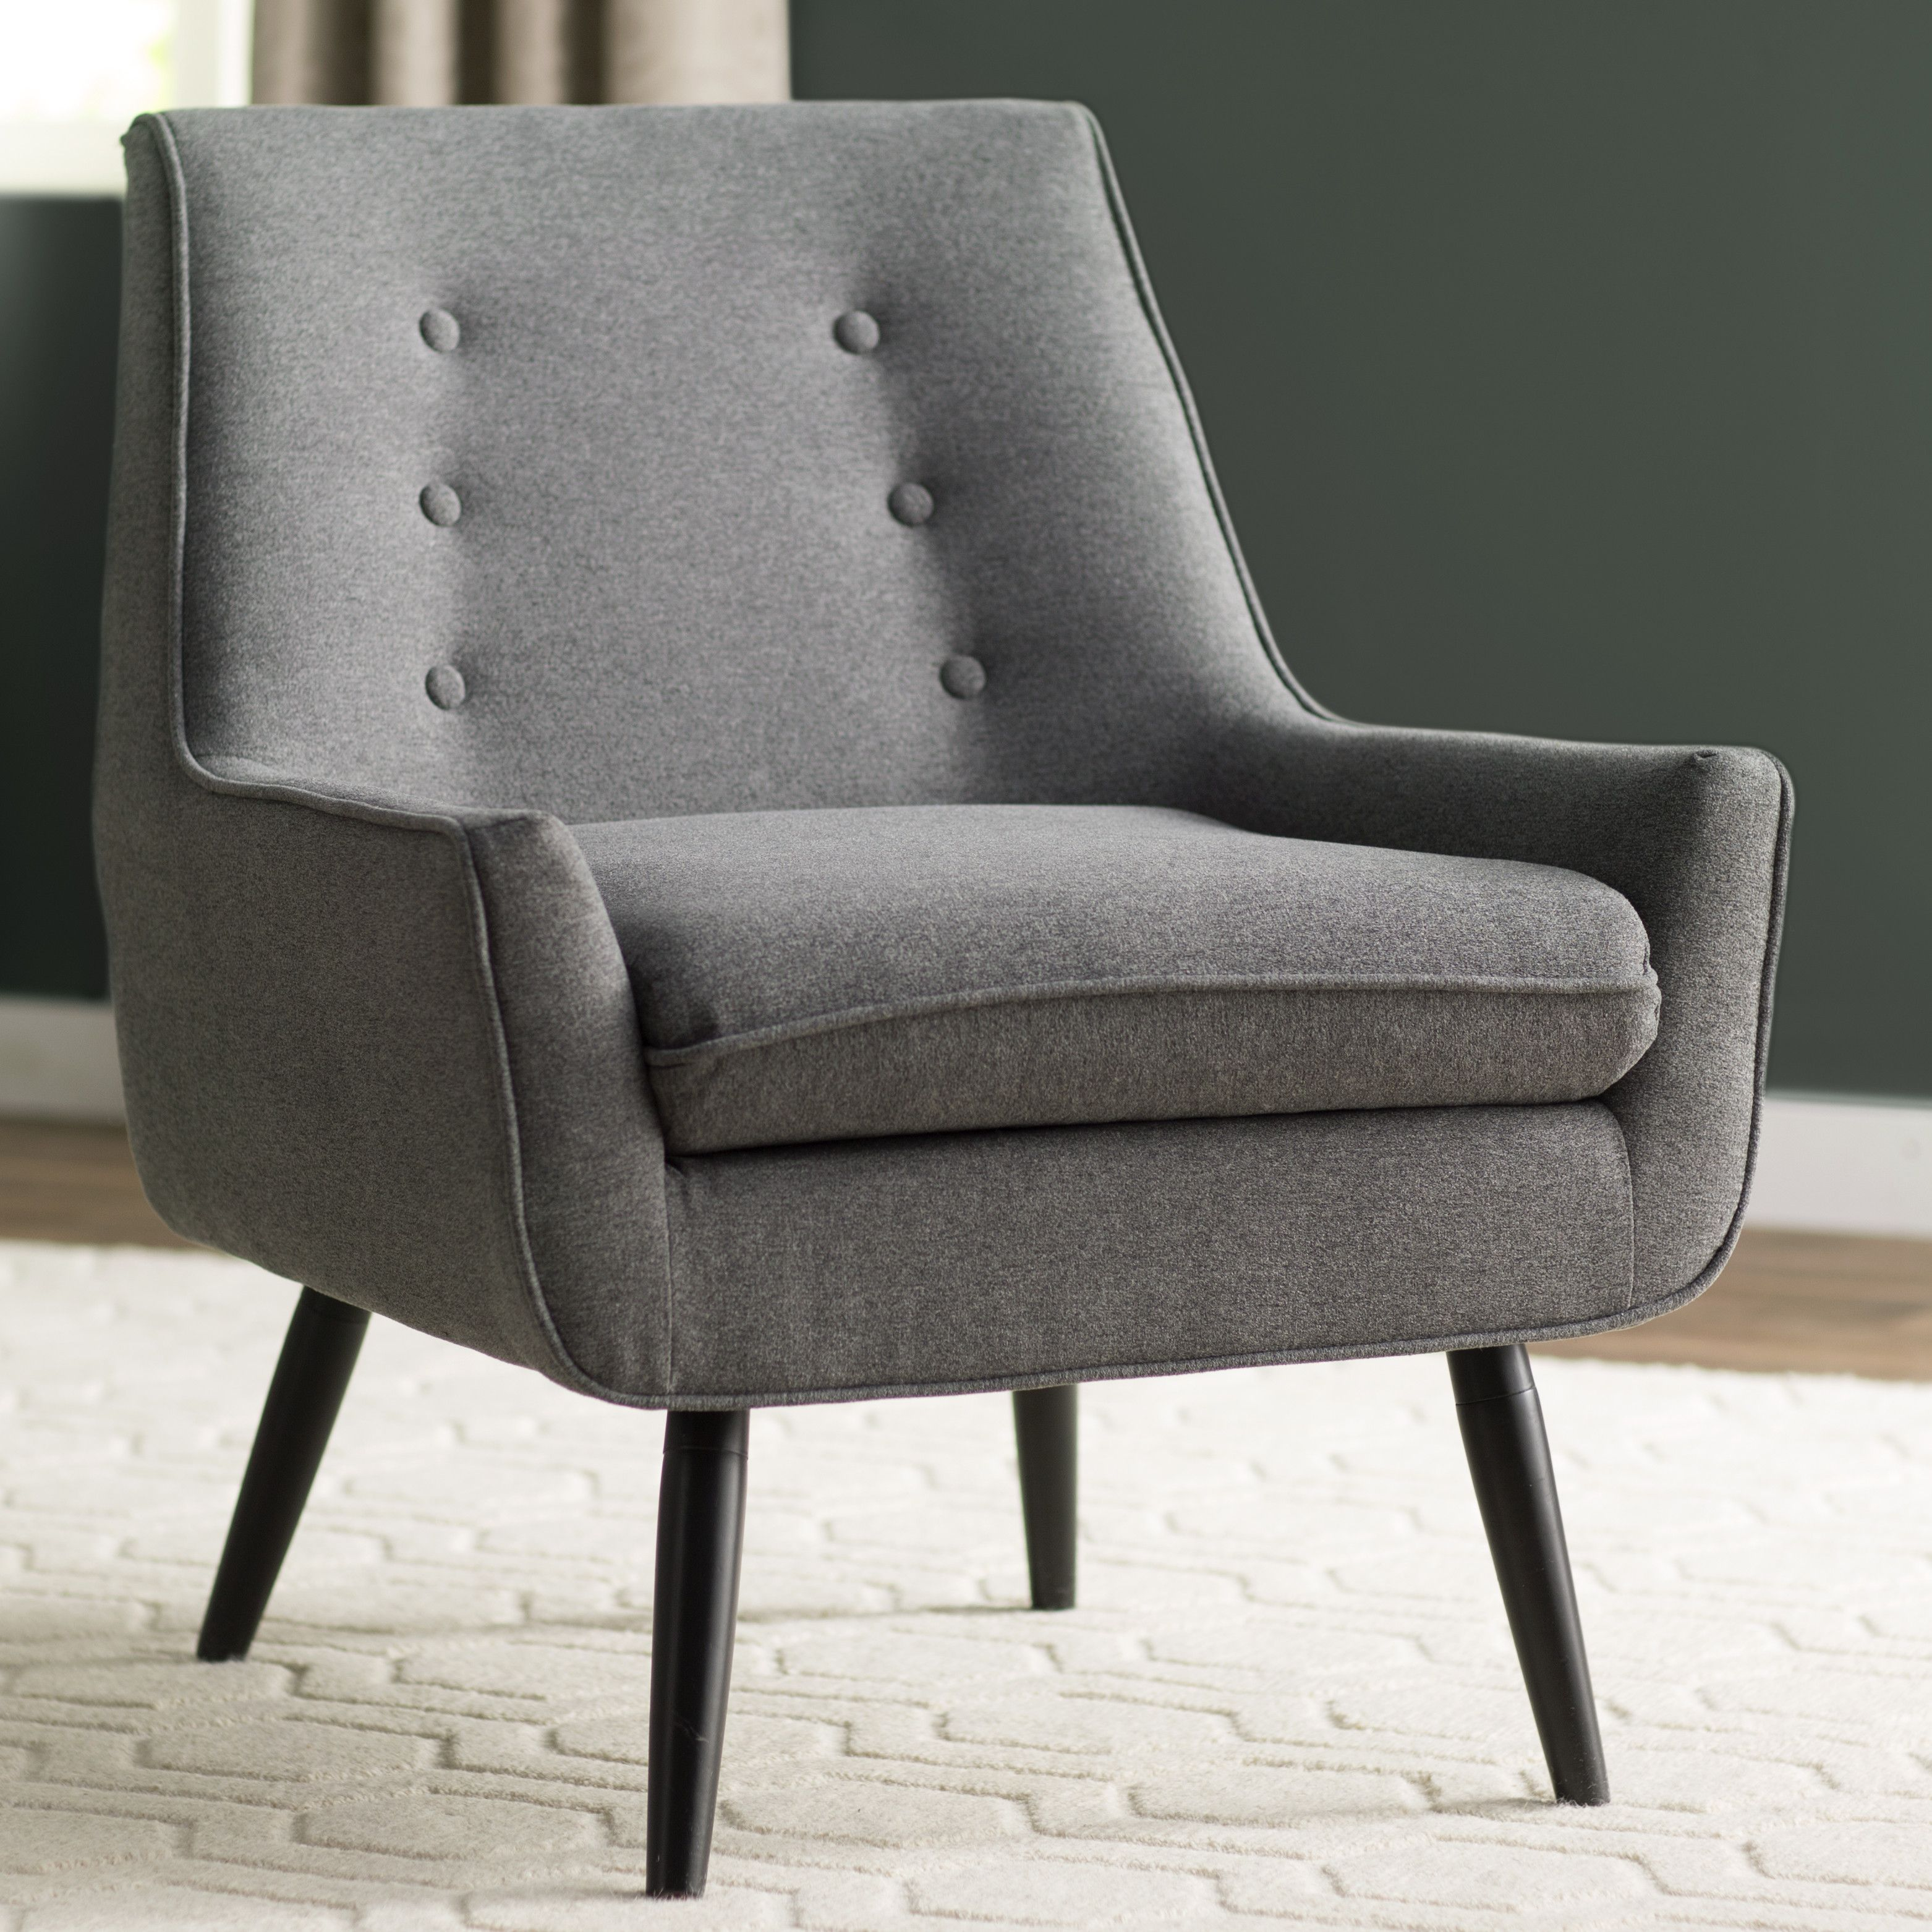 Contemporary furniture langley street eytel arm chair overall 32 25 h x 27 5 w